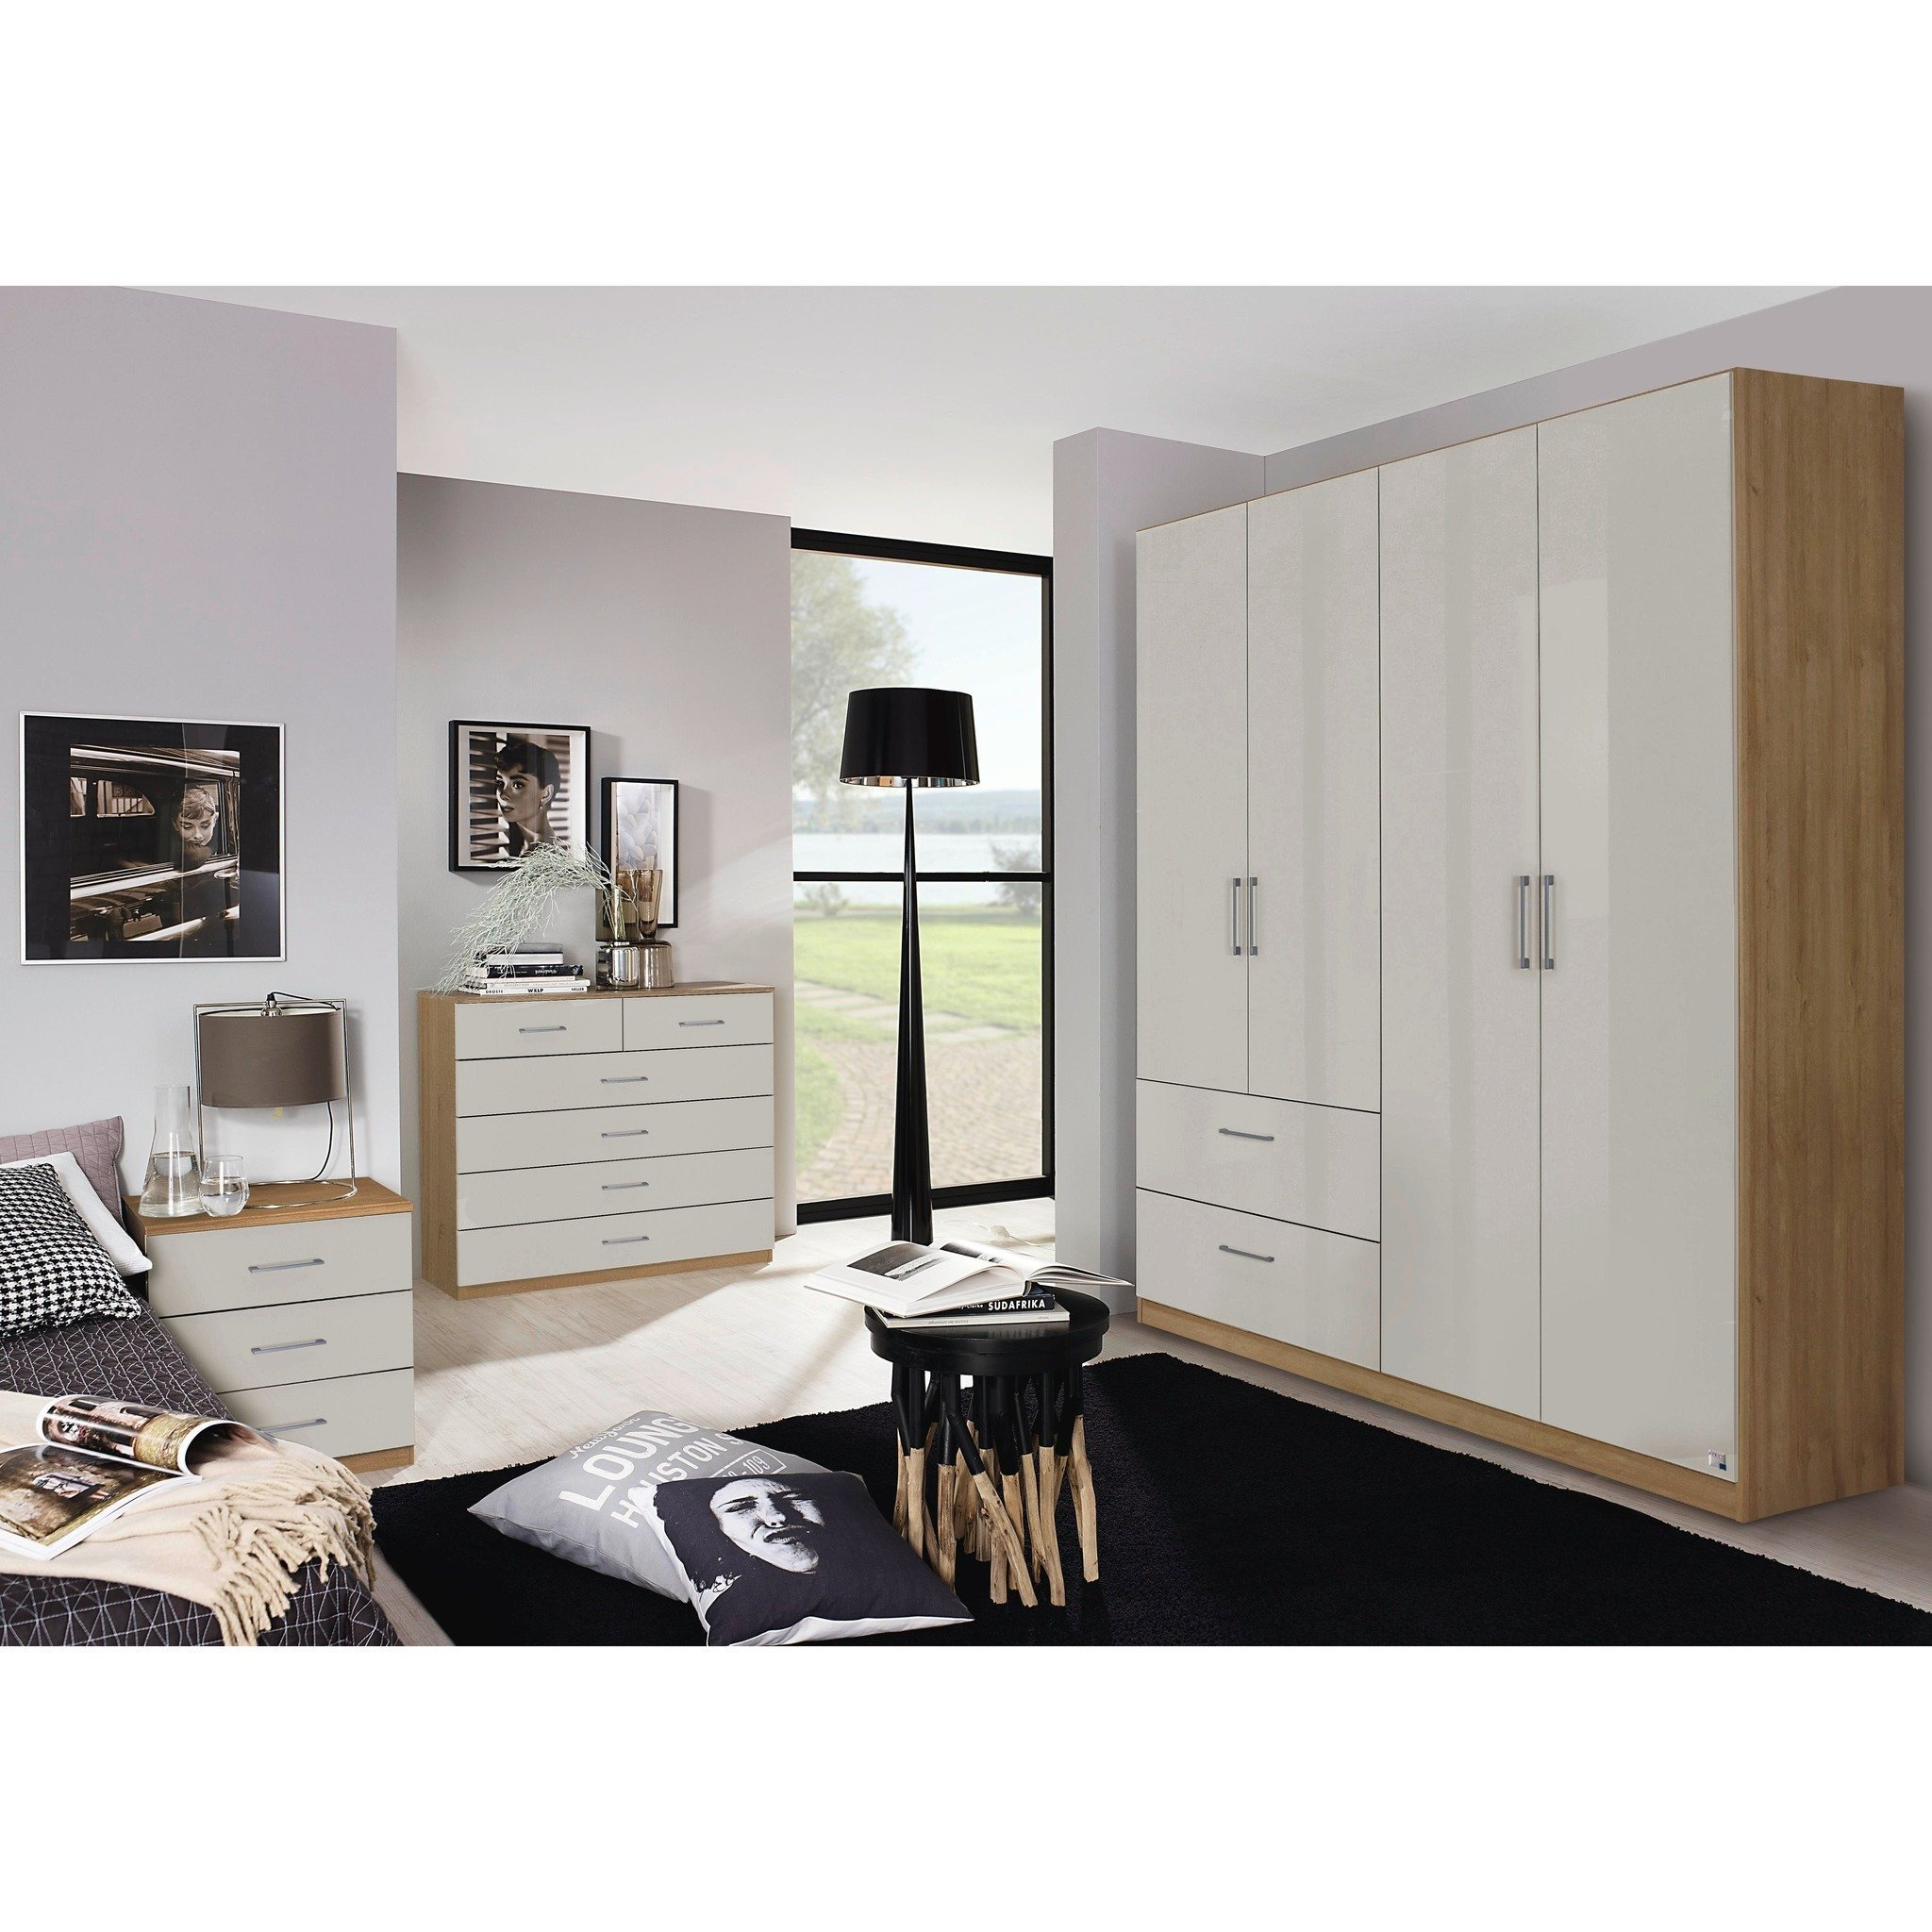 Best Rauch Morella Range German Made Bedroom Furniture Riviera Oak Glo – Freedom Homestore With Pictures